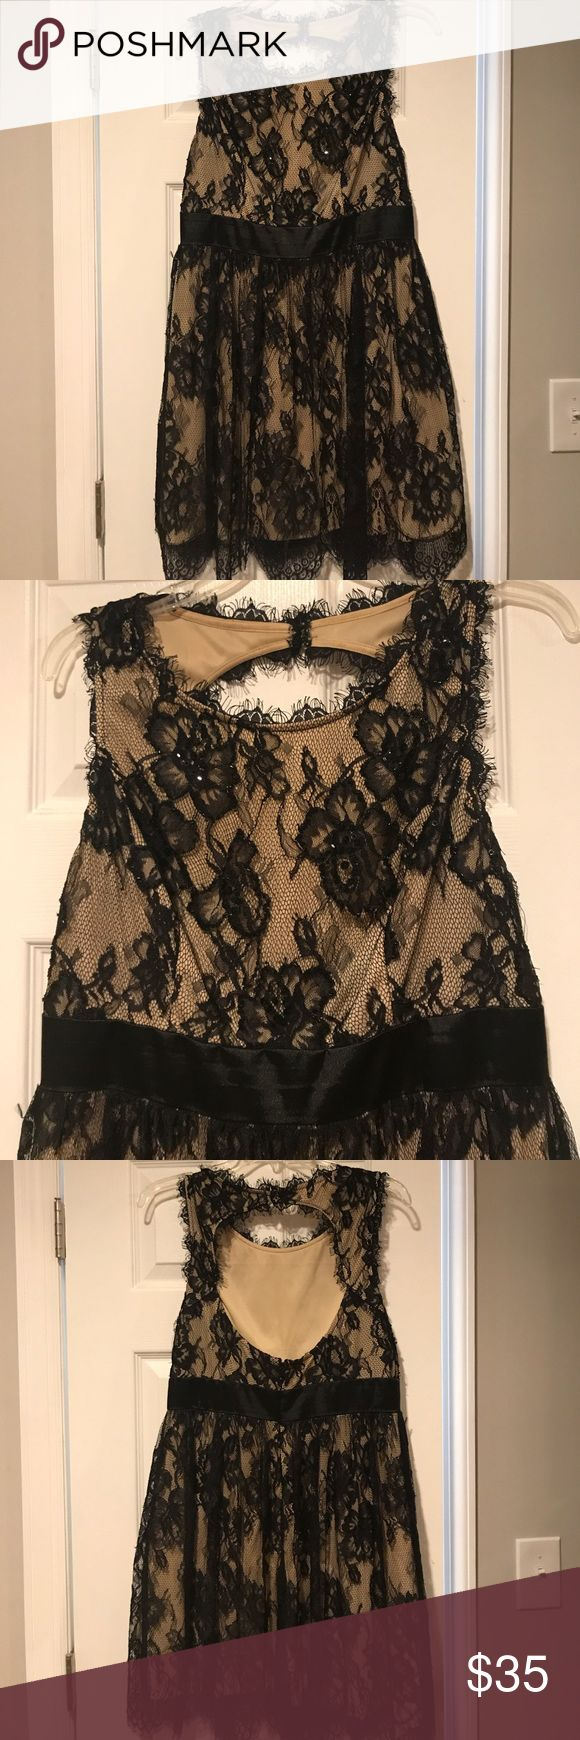 """Betsy Adam dress Worn a few times. Nude with black lace overlay. Keyhole back and black satin band on waist. There is minimal bearing on the top front. It's petite but I am 5'7"""" and the length is perfect - above the knee. Betsy & Adam Dresses"""